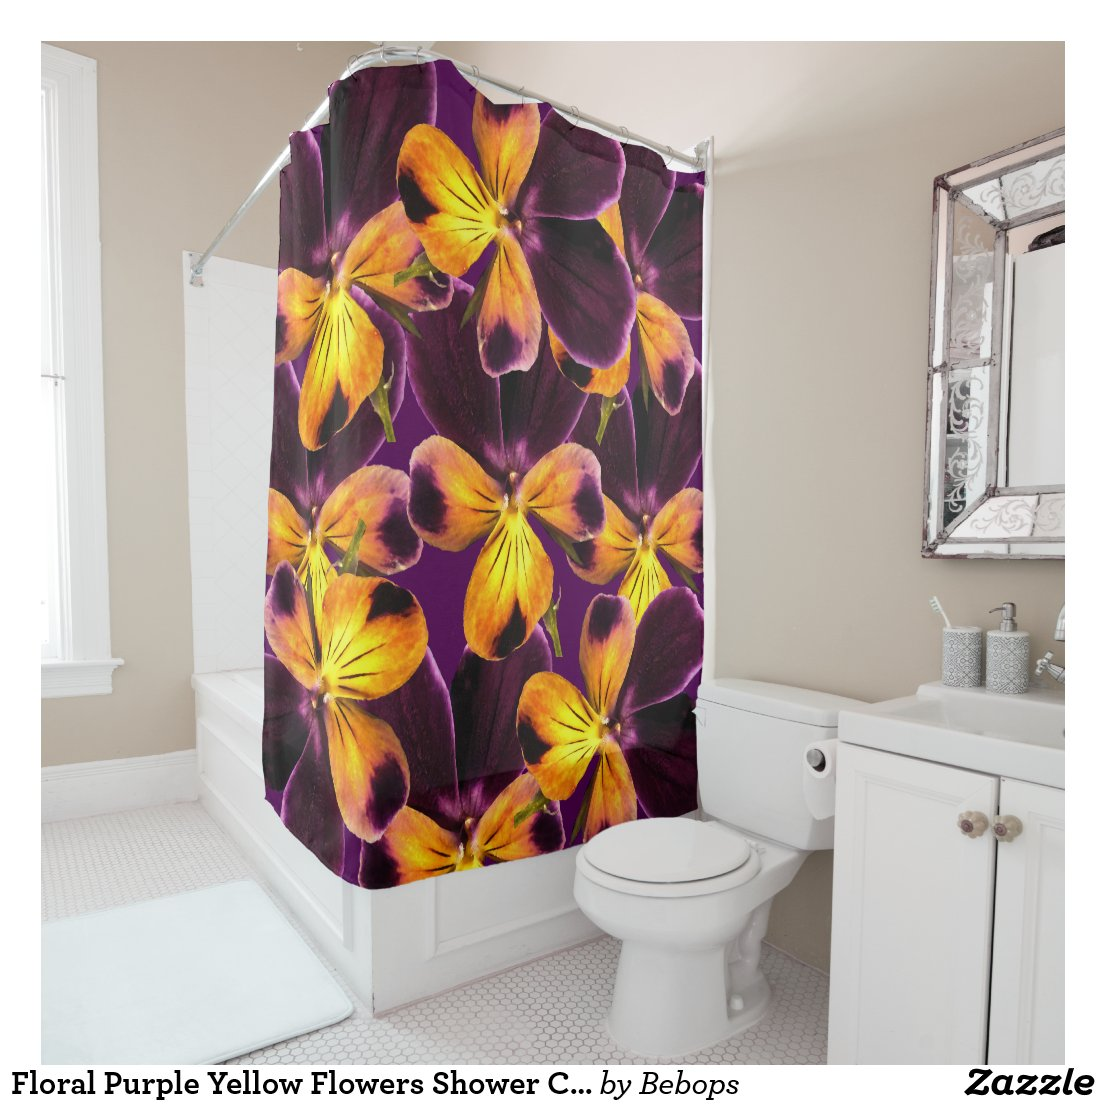 Floral Purple Yellow Flowers Shower Curtain